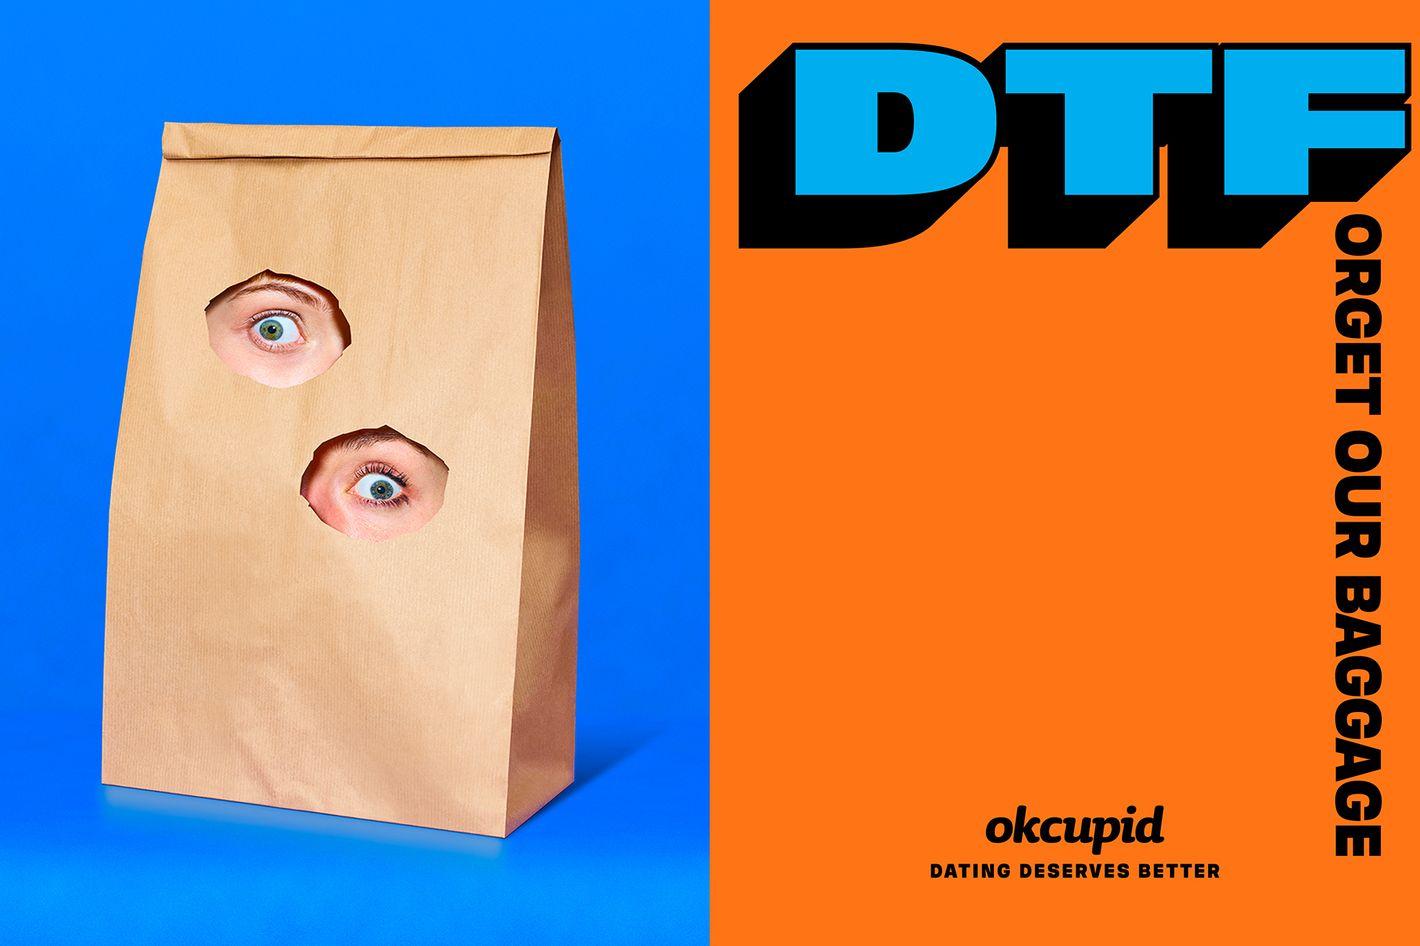 OkCupid Redefines 'DTF' in New York City Subway Ads